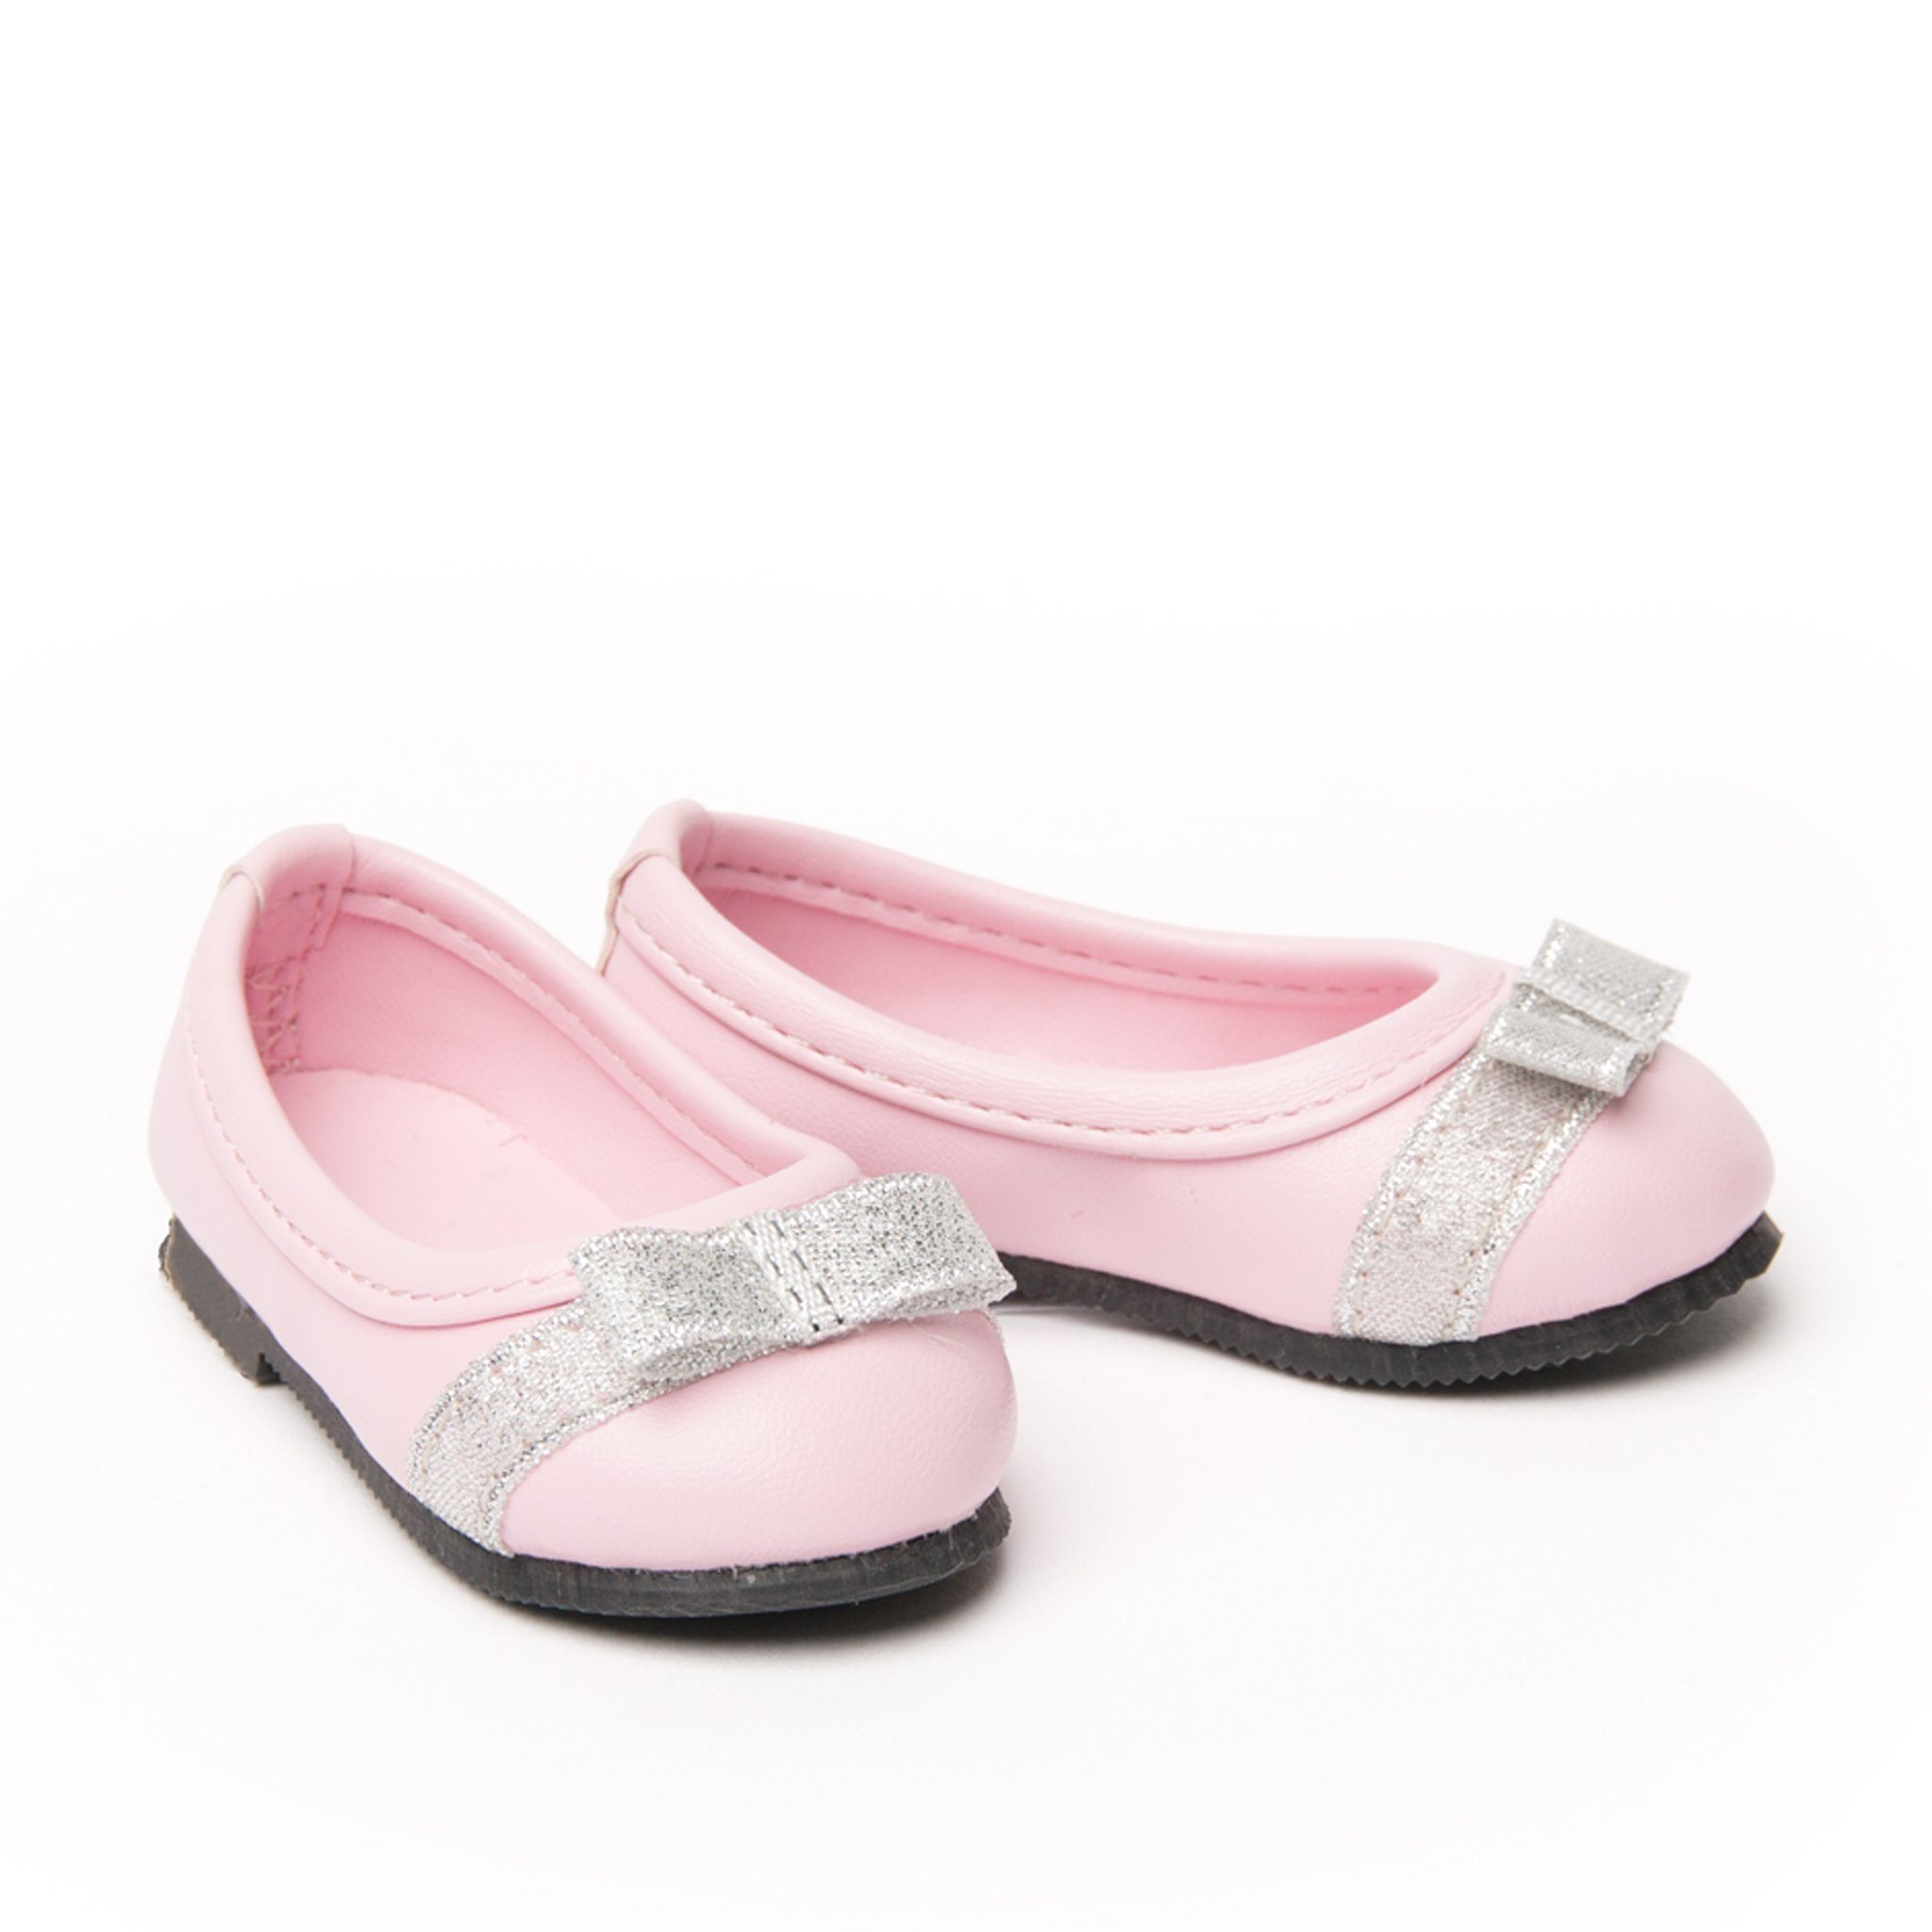 Graceful Lace pink ballet flats with silver accents fits all 18 inch dolls.